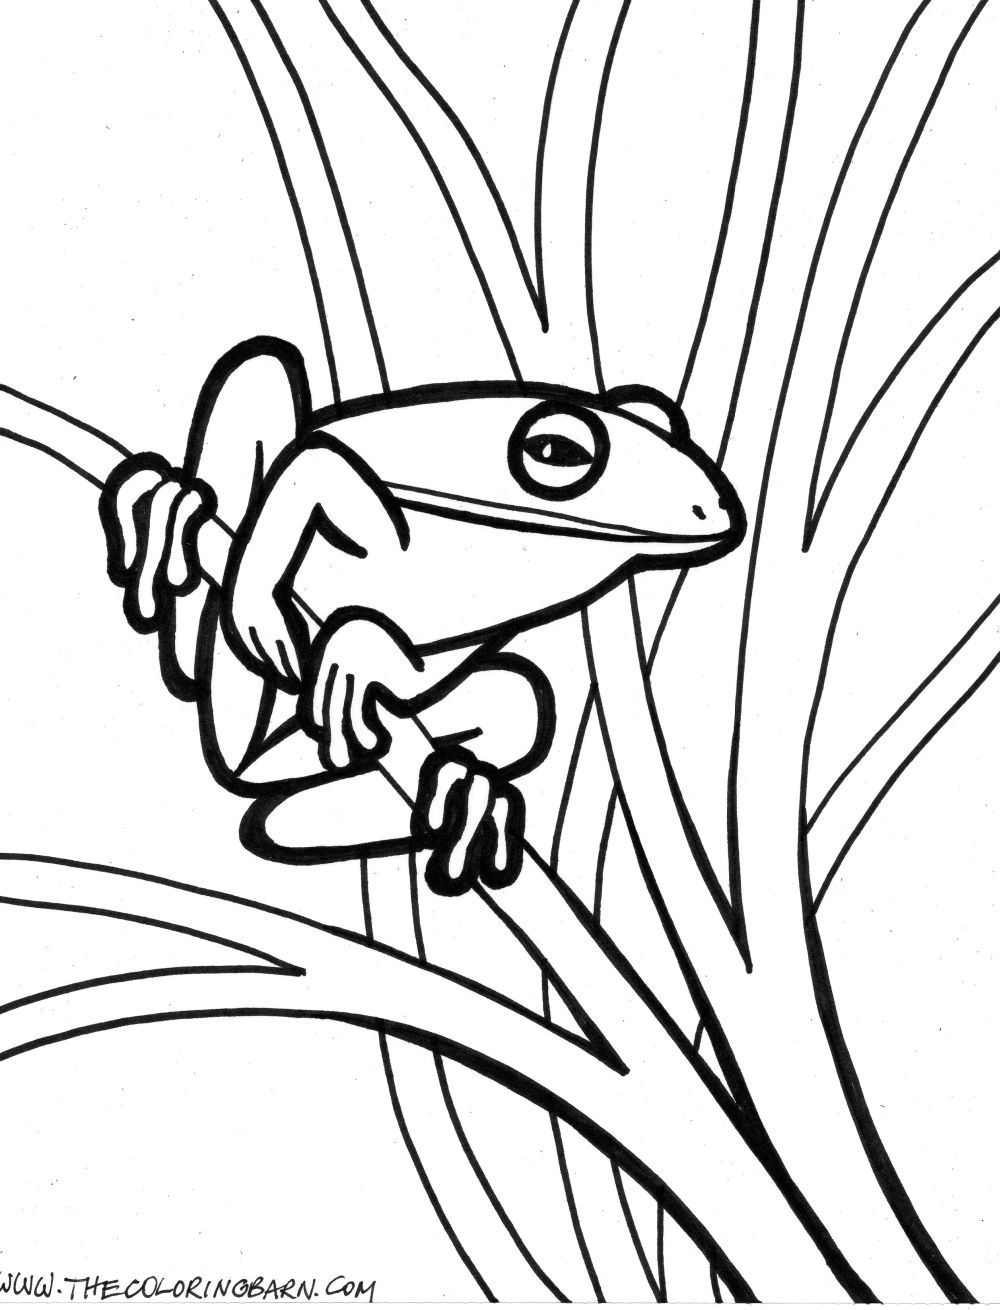 coloring frog outline images clipart panda free clipart images frog outline coloring images